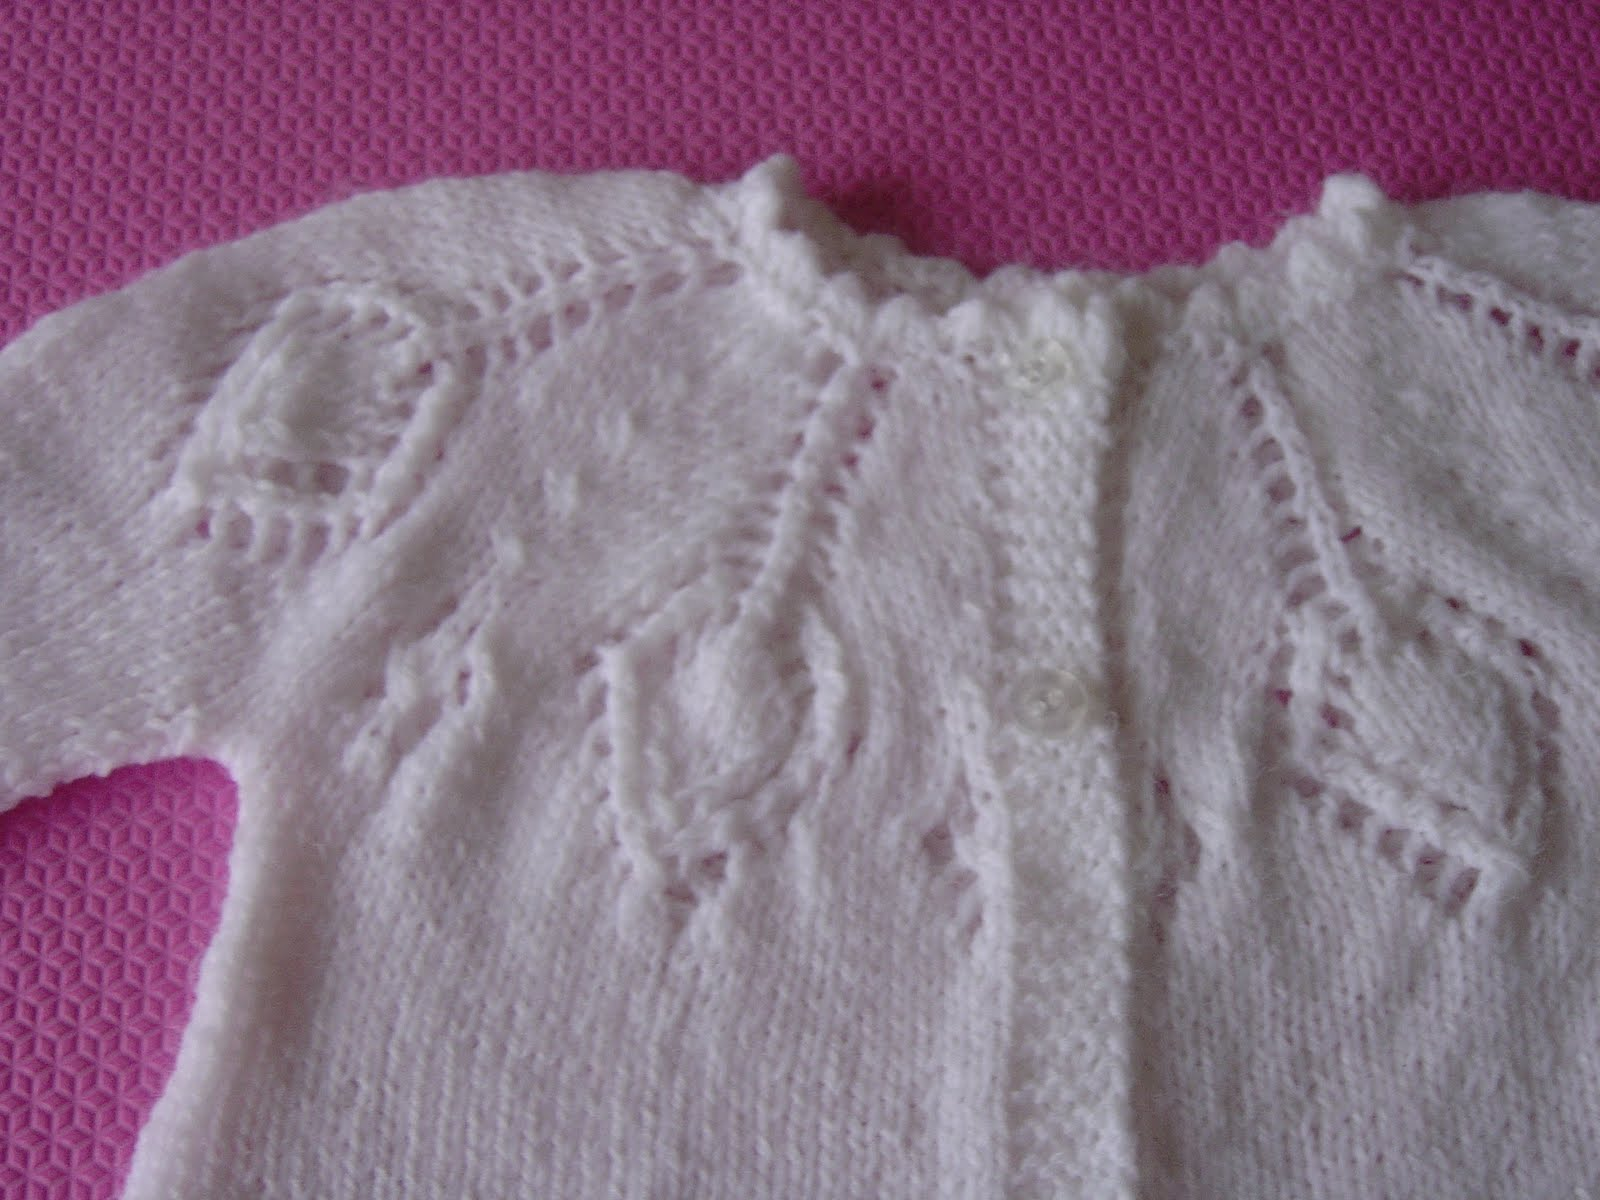 free baby knitting patterns - Music Search Engine at Search.com